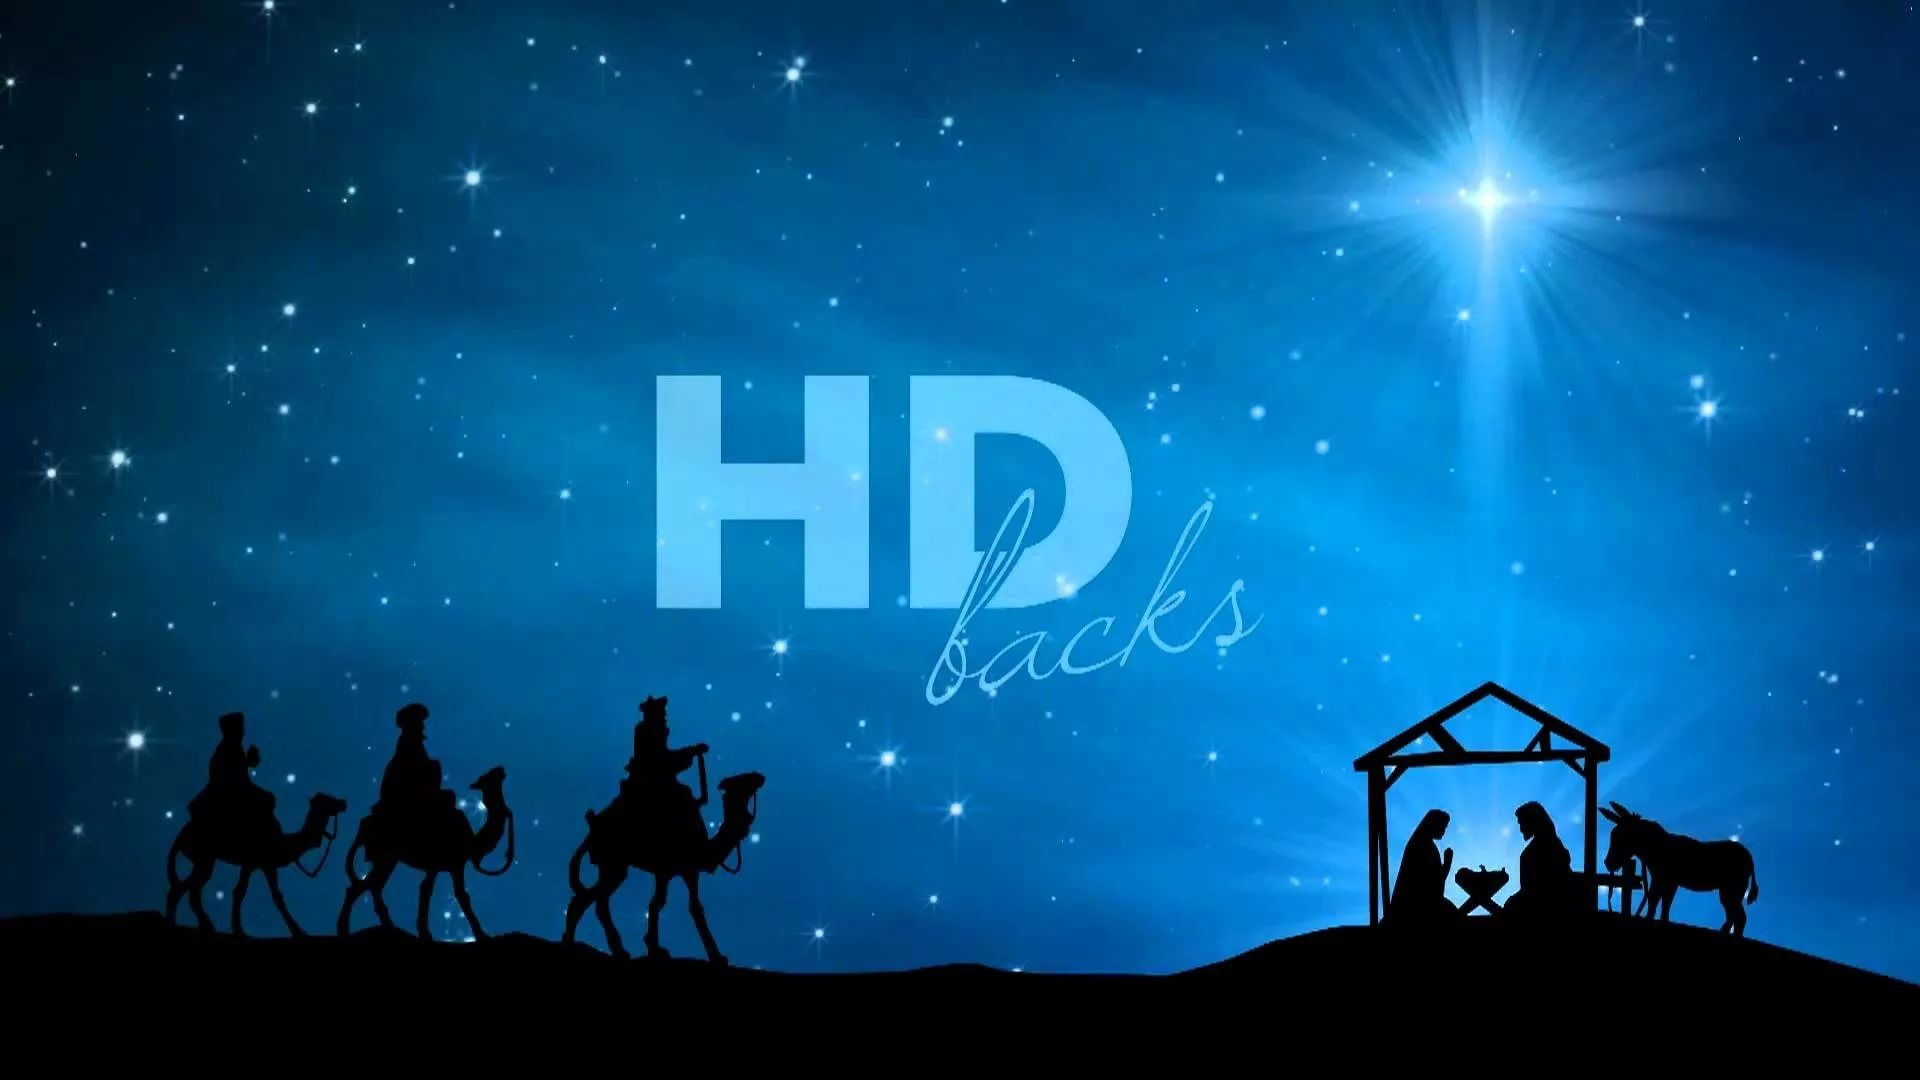 Christian Christmas download free wallpaper image search